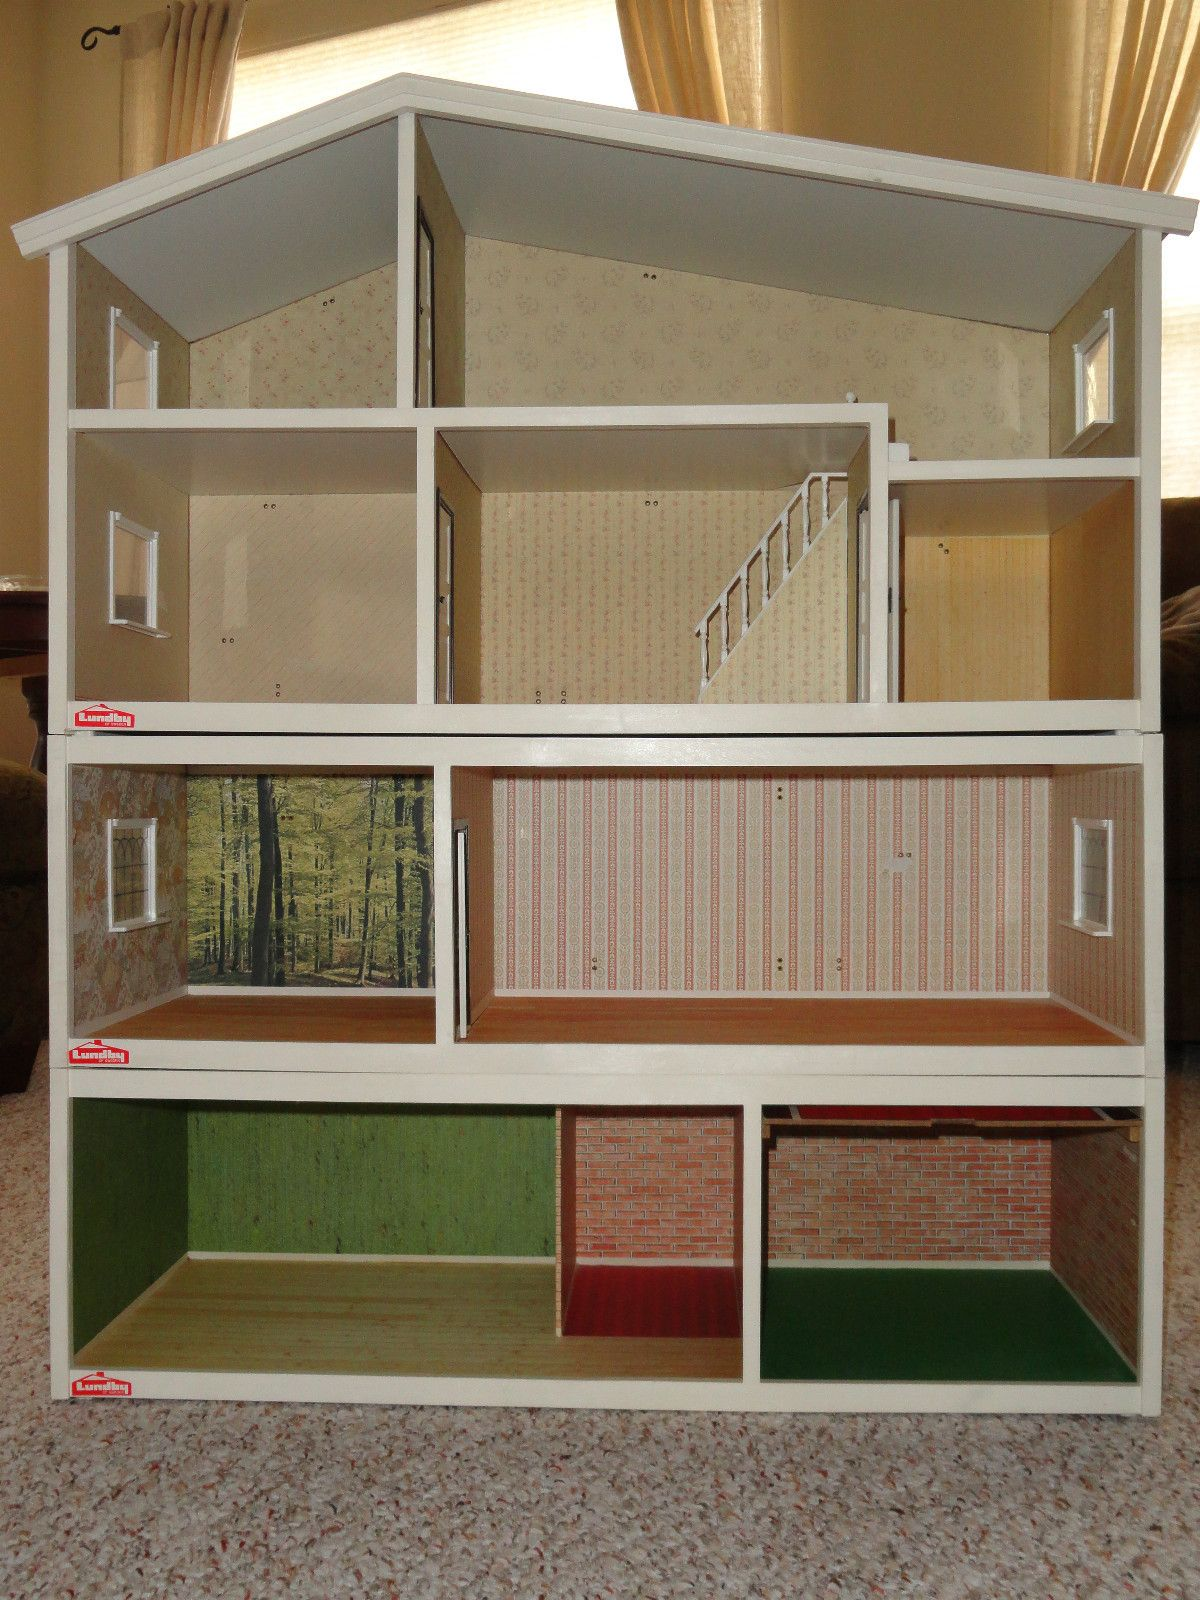 Details About Vintage Lundby 4 Story Electic Dollhouse